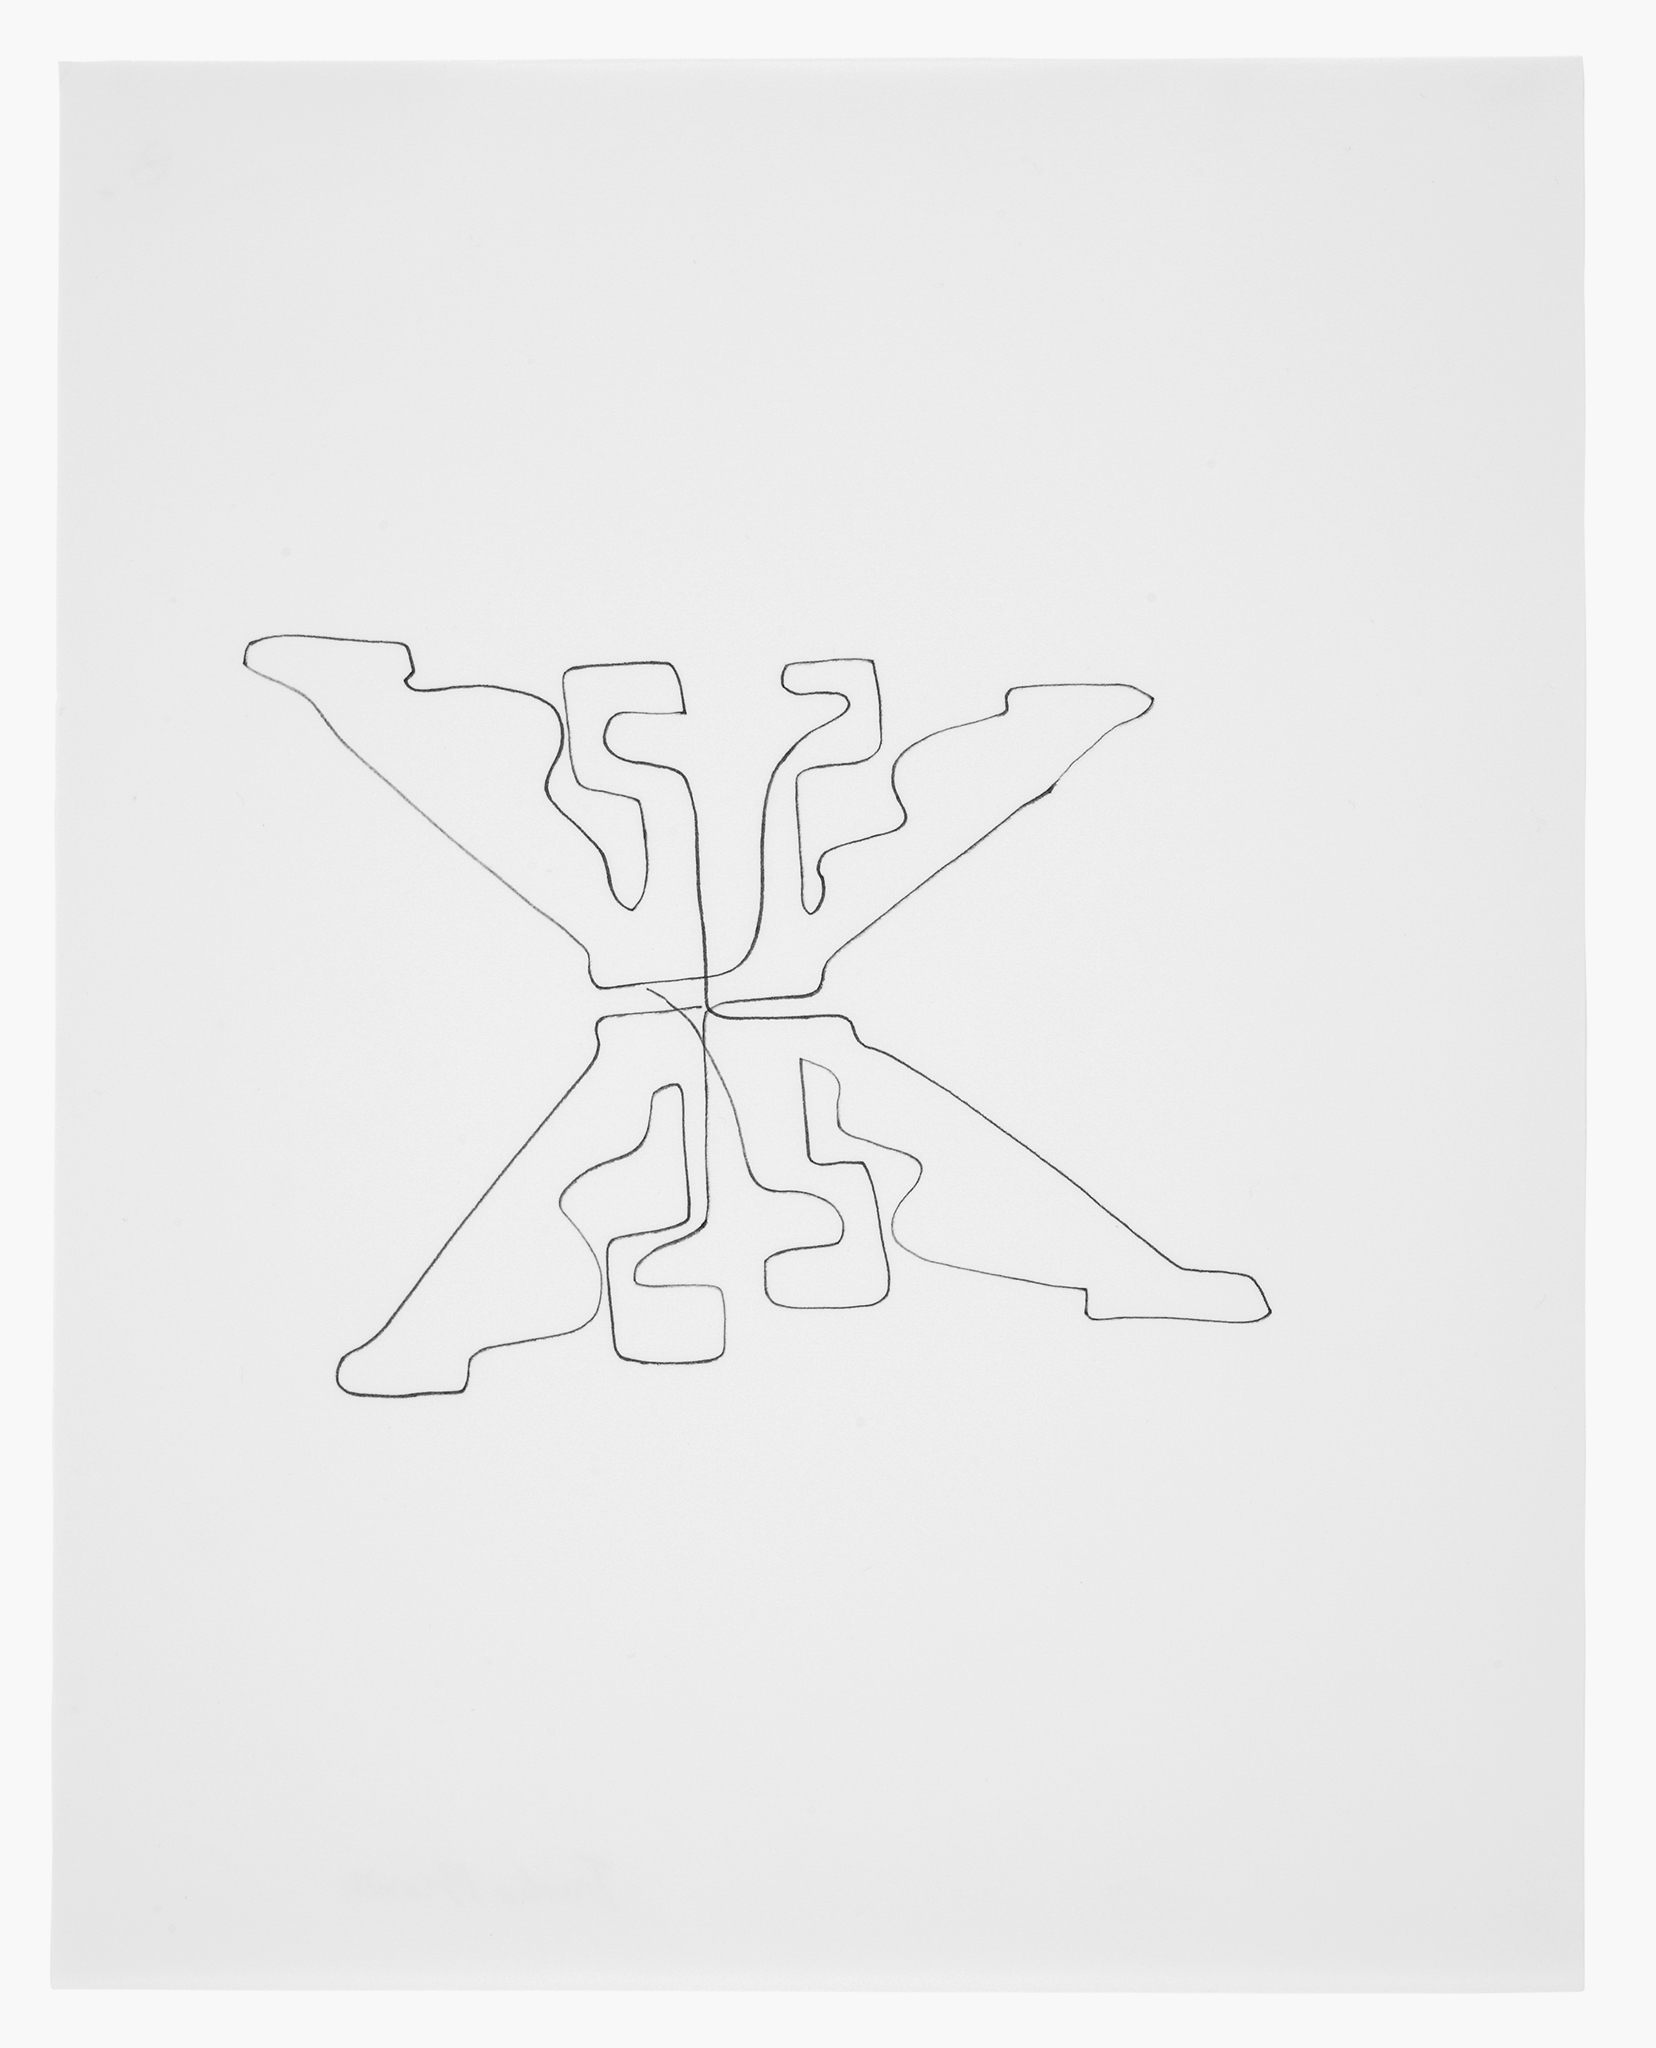 If you couldnt see me on performativity walker art center 31 trisha brown untitled 1994 ink on paper 20 x 17 x 1 916 in 5271 x 4477 x 397 cm framed collection the artist ccuart Choice Image